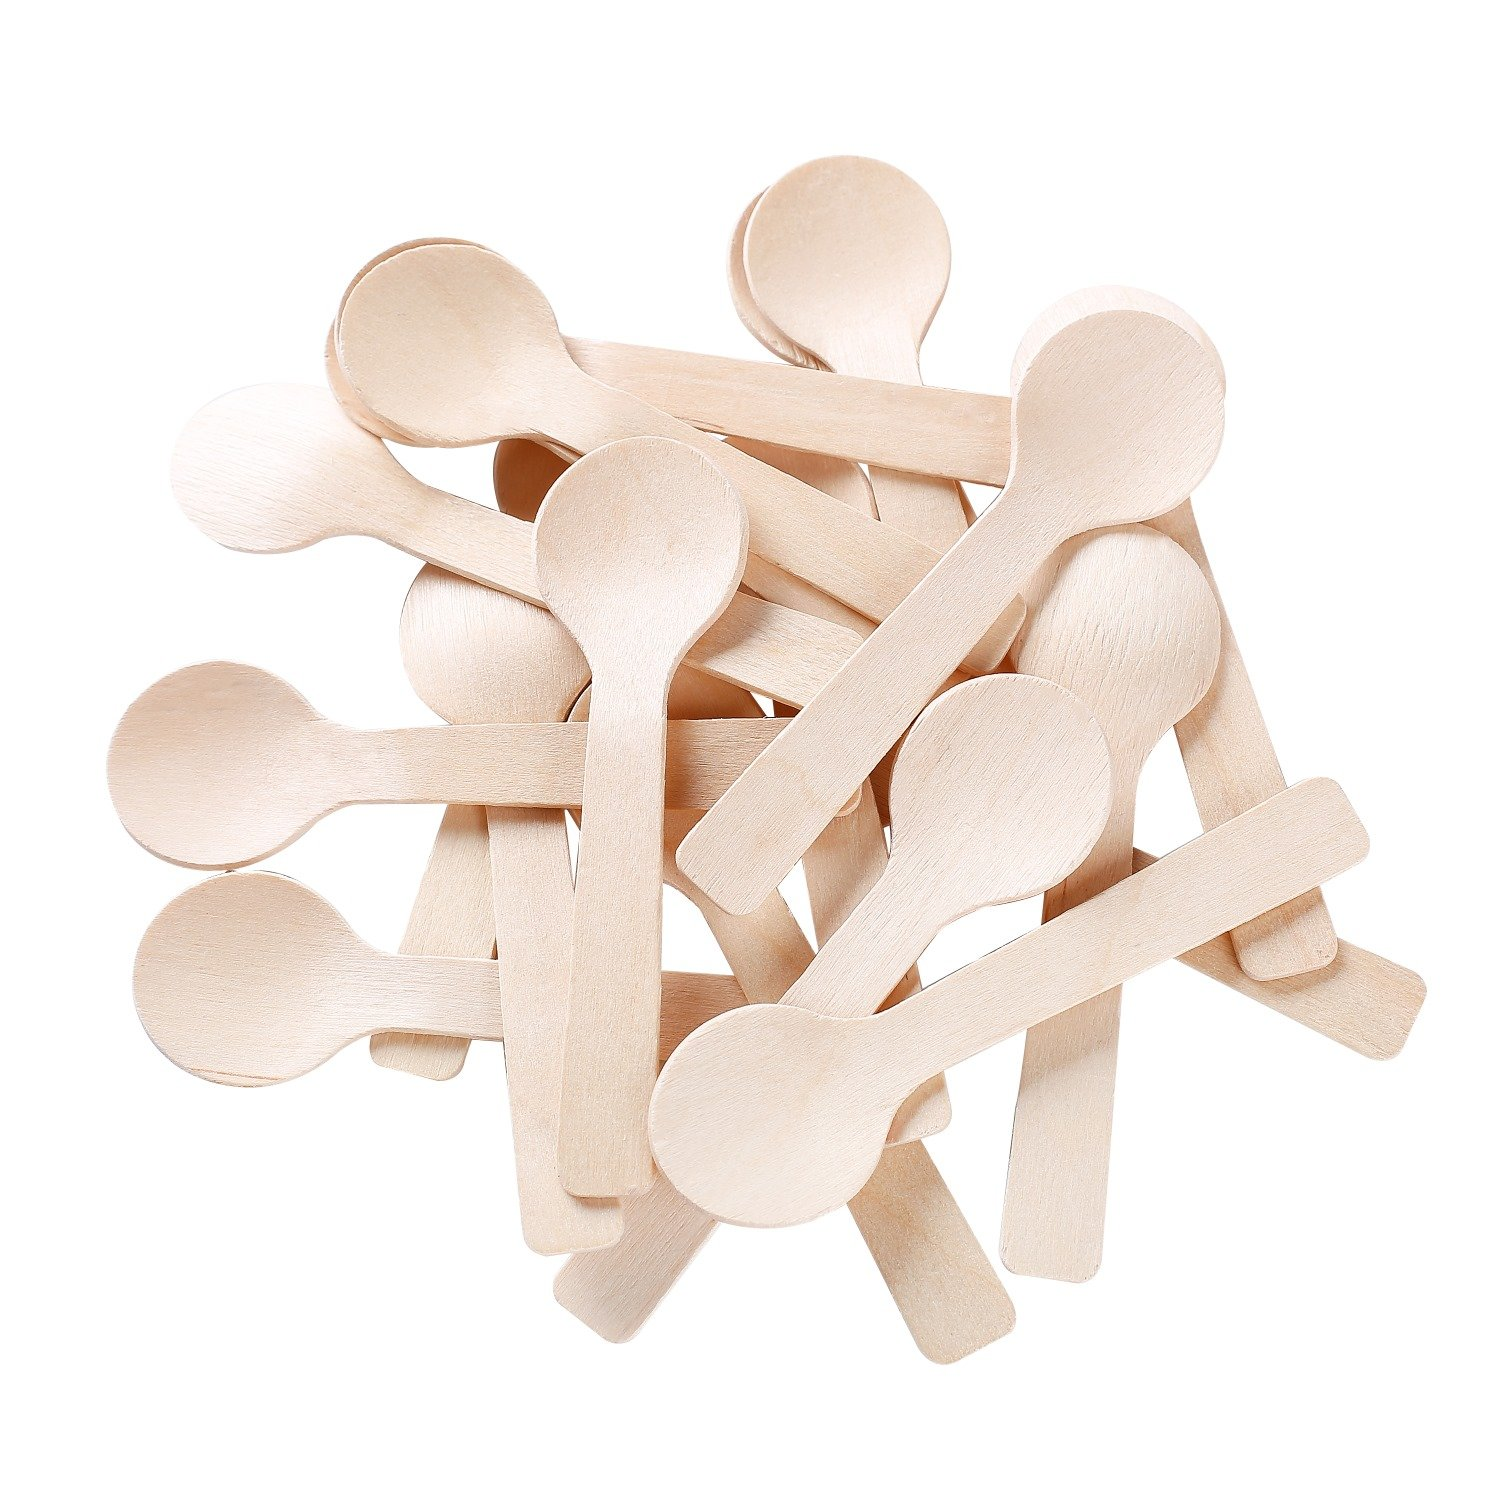 Gmark 4'' Mini Wooden Spoons 200 ct, Biodegradable Compostable Birchwood (200pcs/bag) GM1042 by Gmark